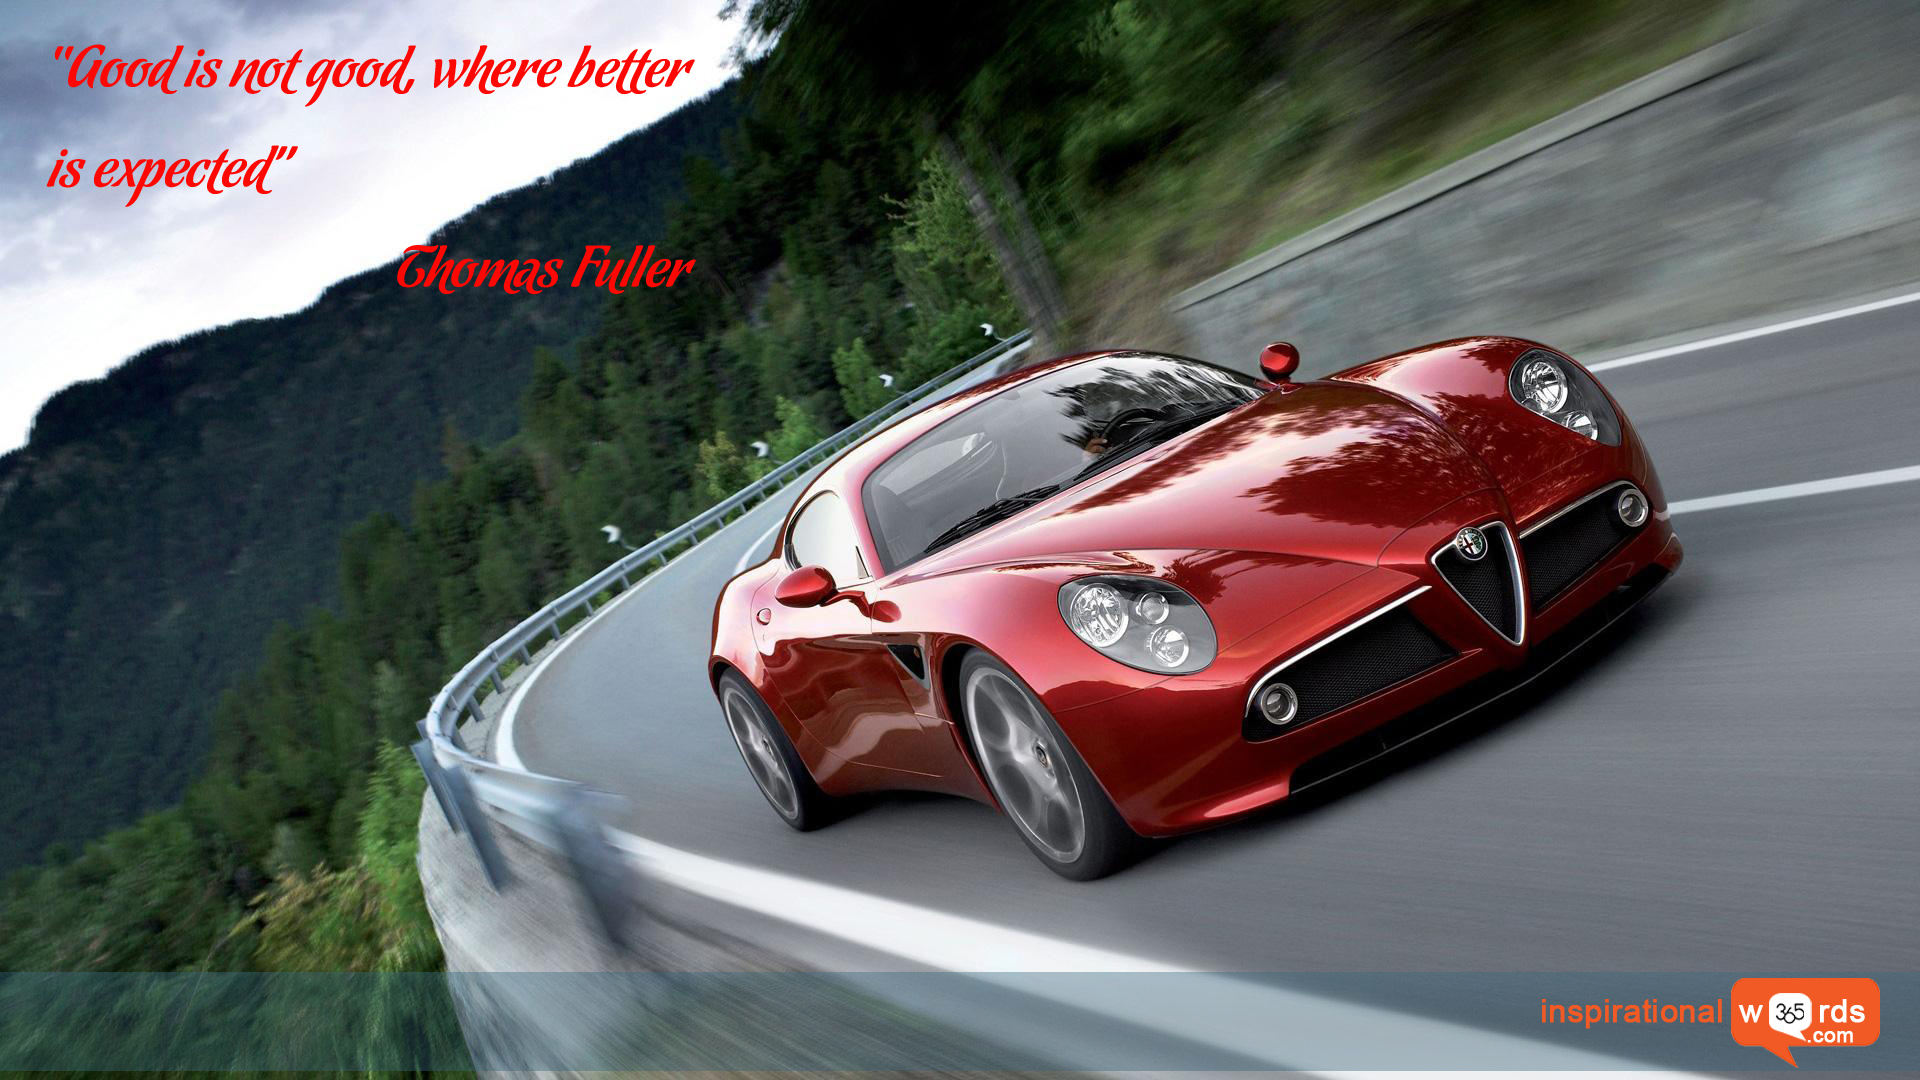 Inspirational Wallpaper Quote  by Thomas Fuller